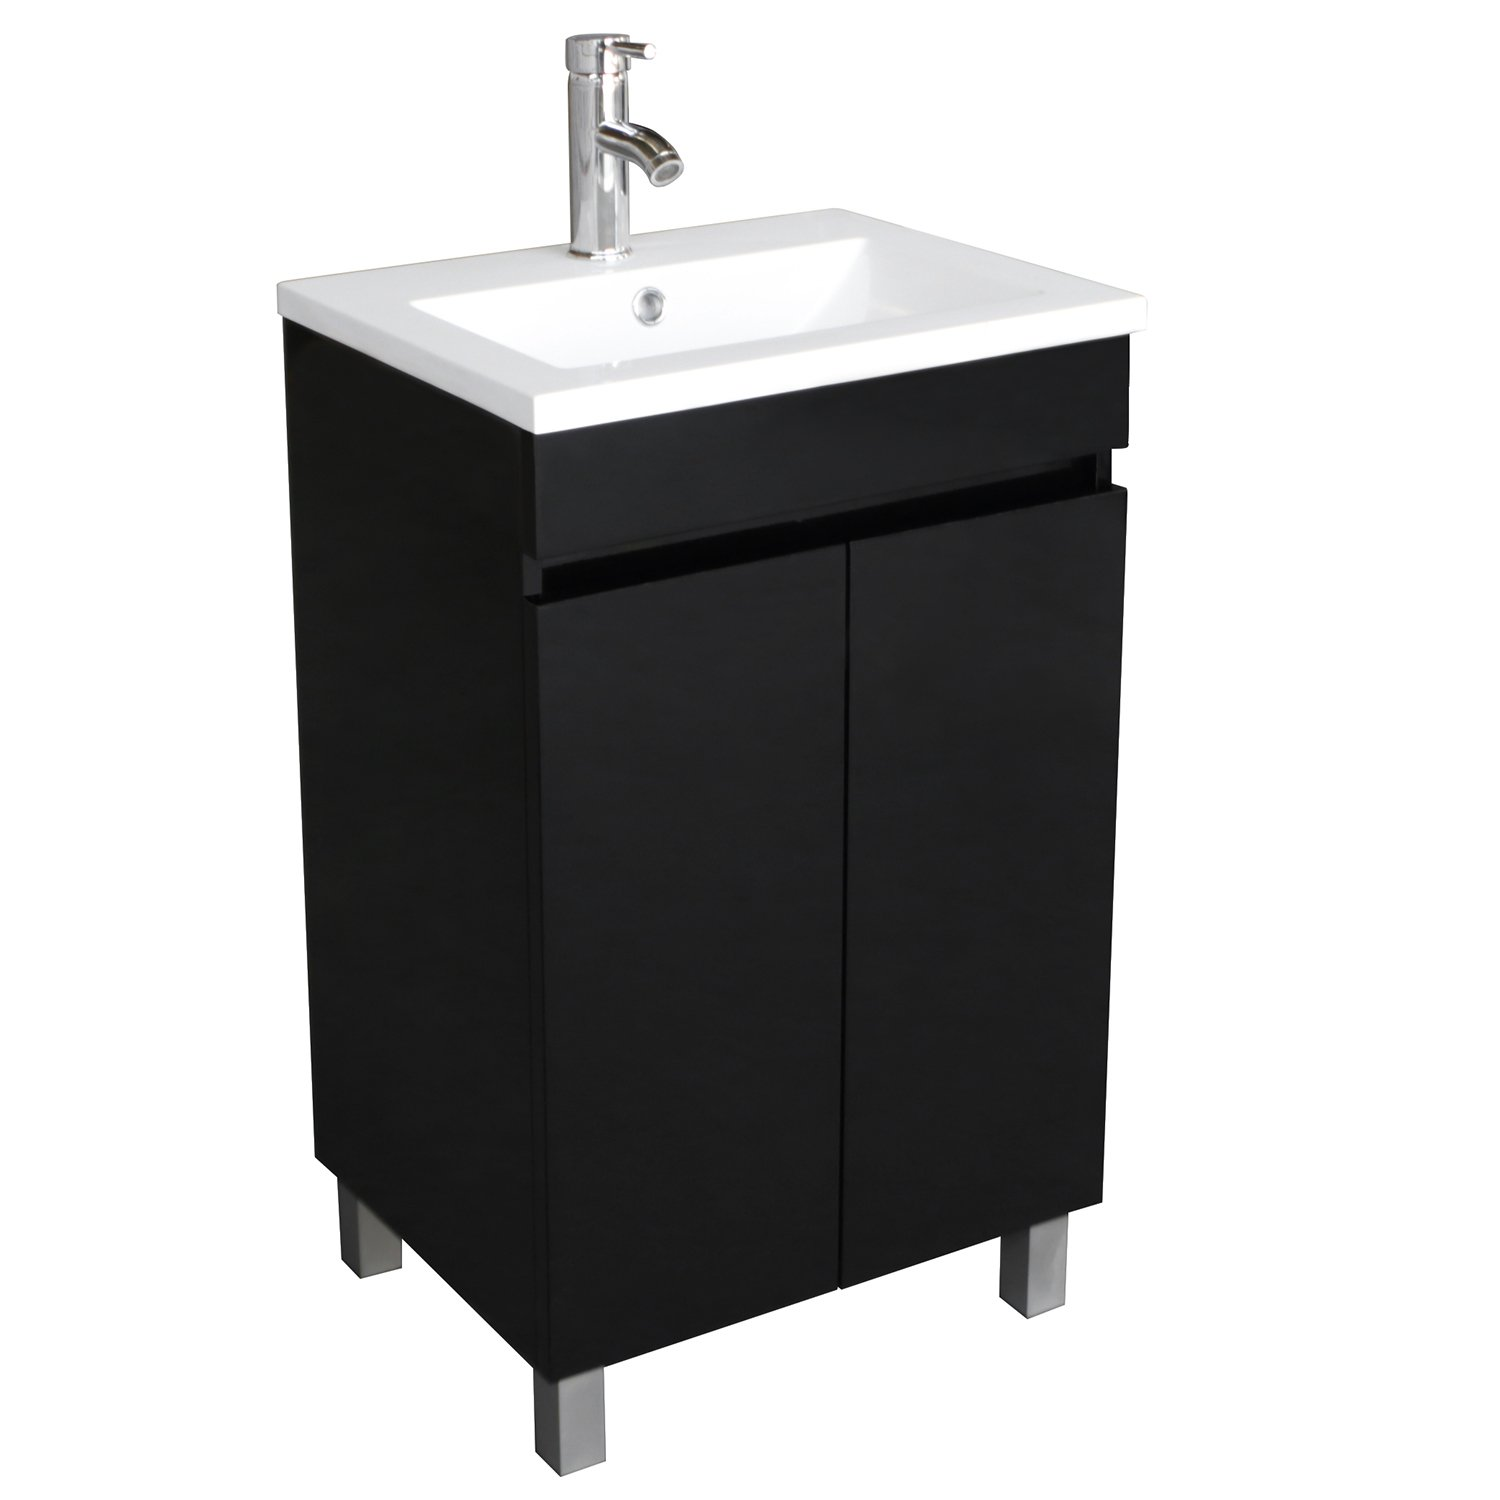 BATHJOY 20 Inch Black Single Wood Bathroom Vanity Cabinet with ...